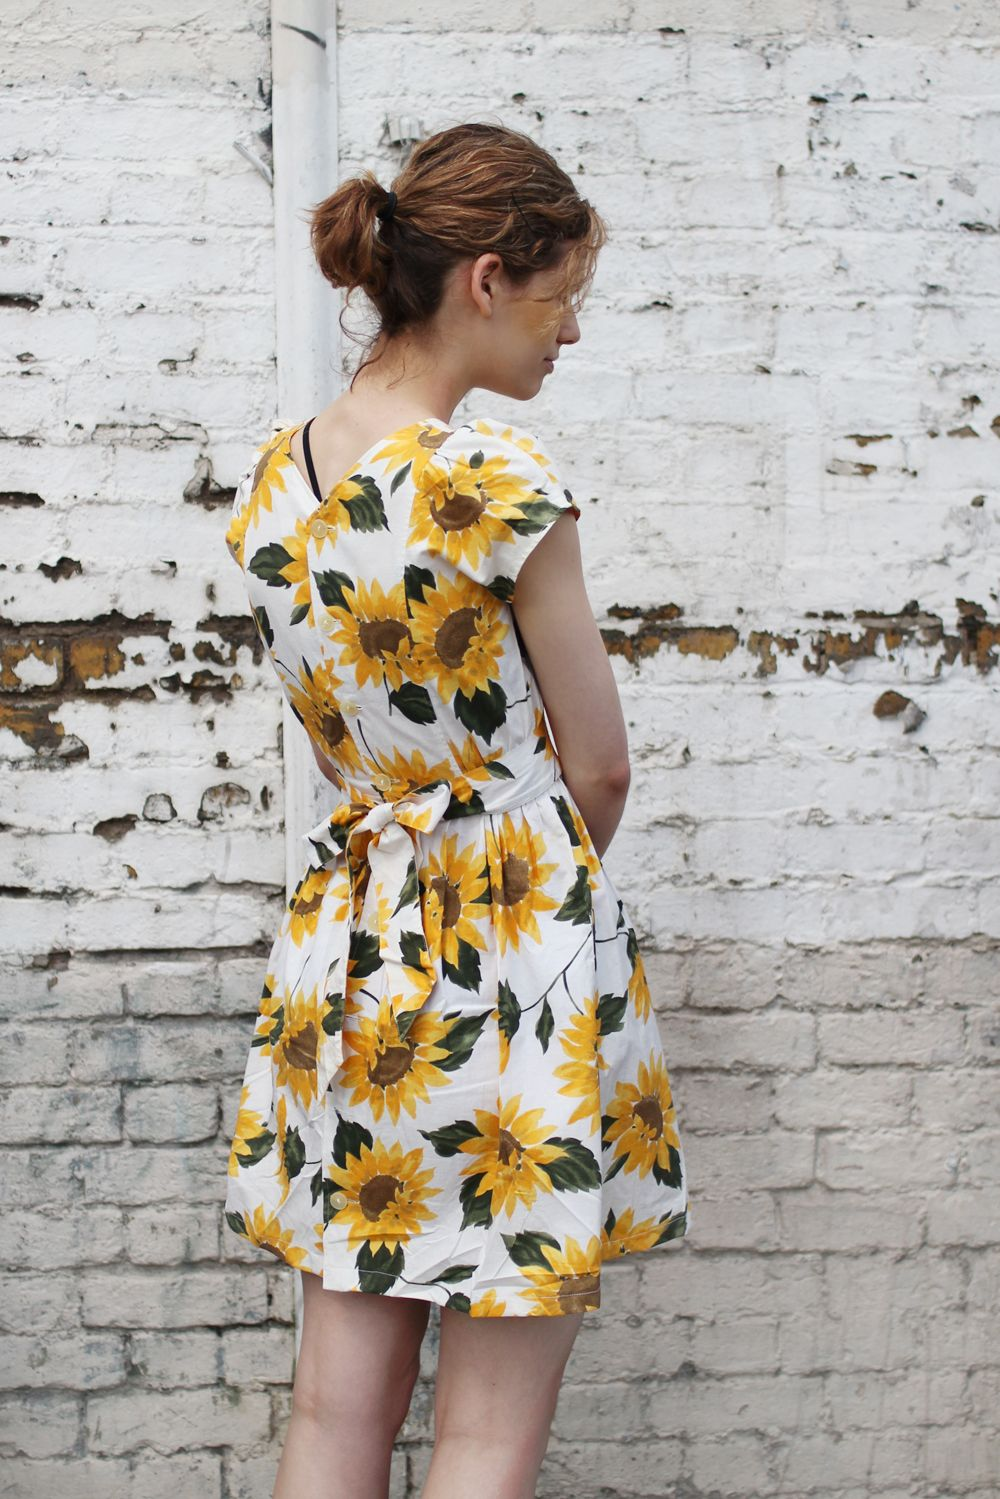 Flower Print Vintage Dress Vestidosdresses Vestidos